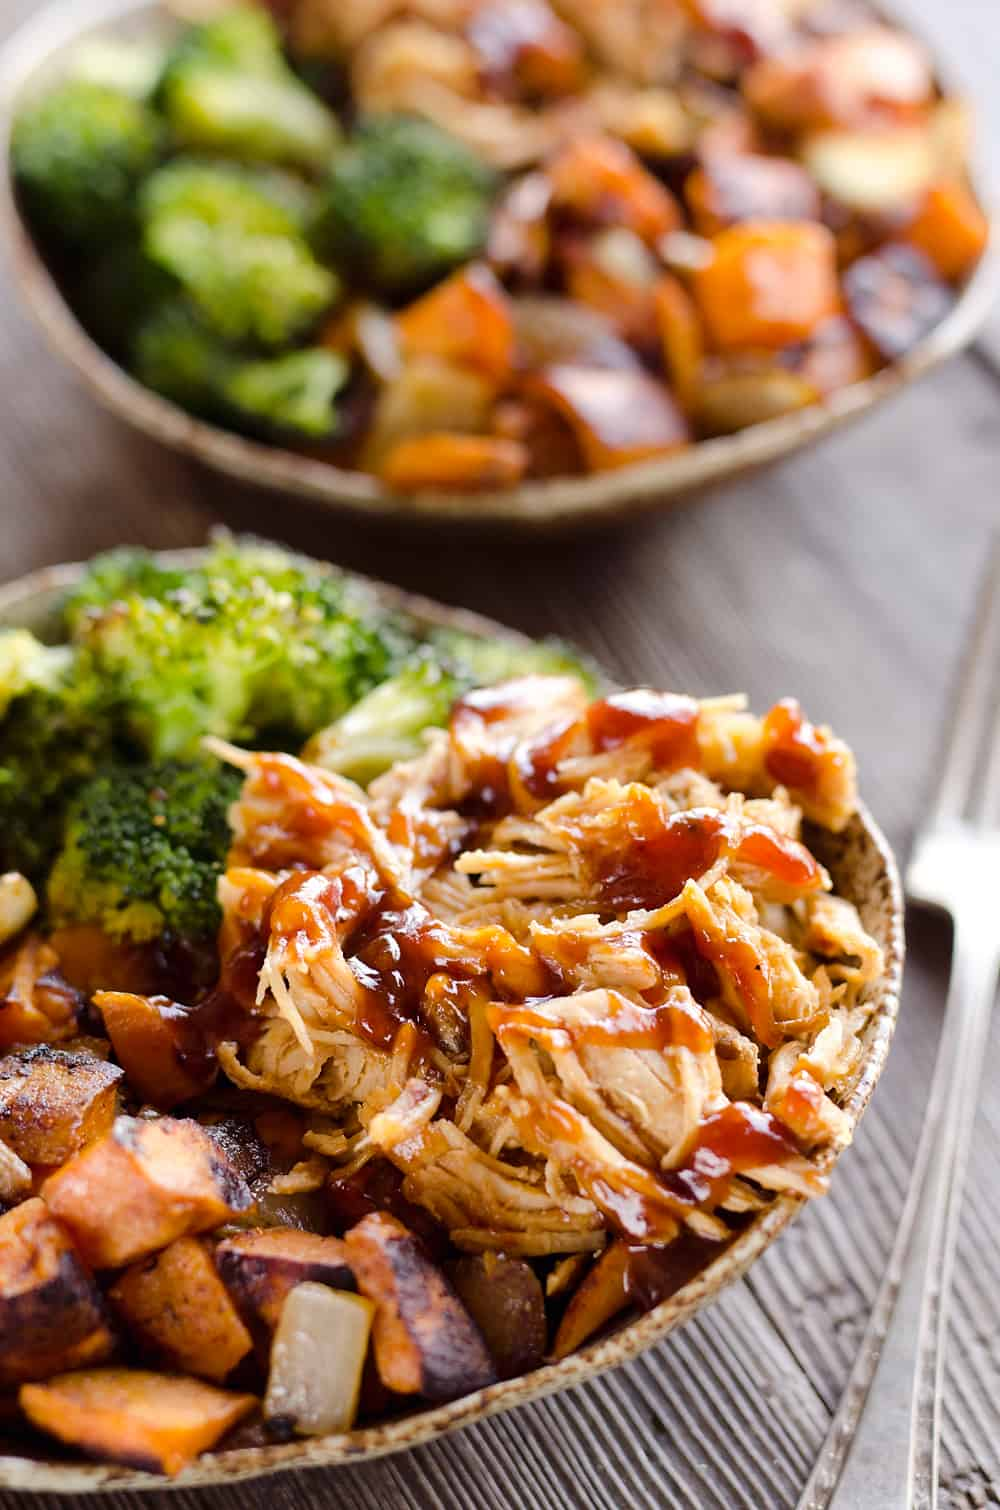 BBQ Chicken & Roasted Sweet Potato Bowls - Easy Meal Prep